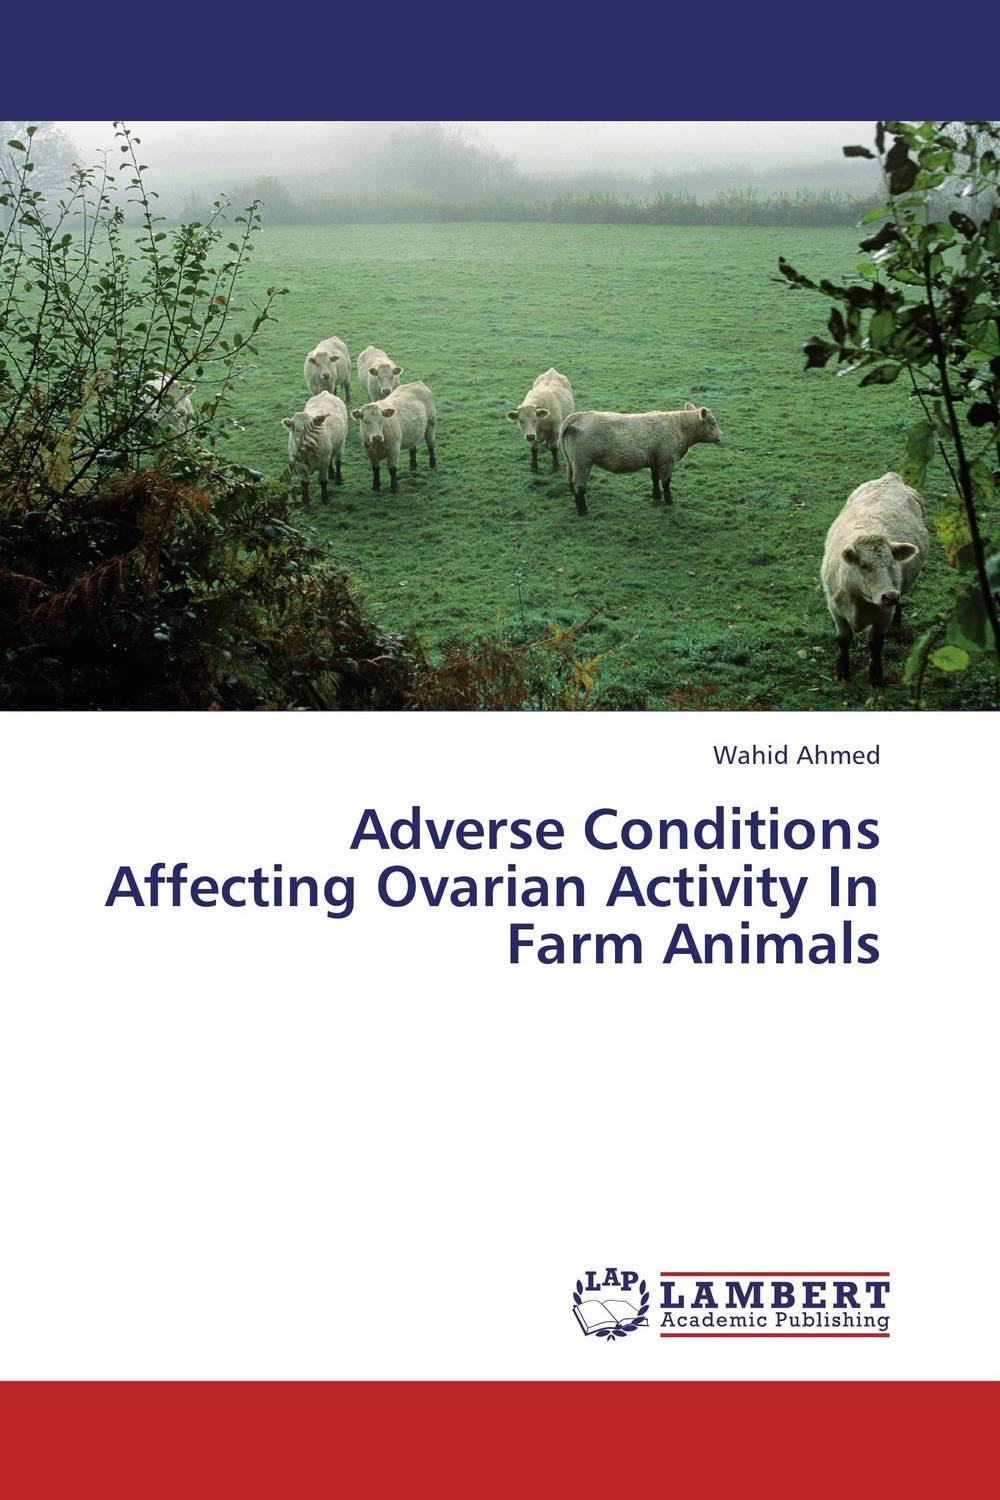 Adverse Conditions Affecting Ovarian Activity In Farm Animals vishnu gupta modulation of ovarian functions and fertility response using insulin